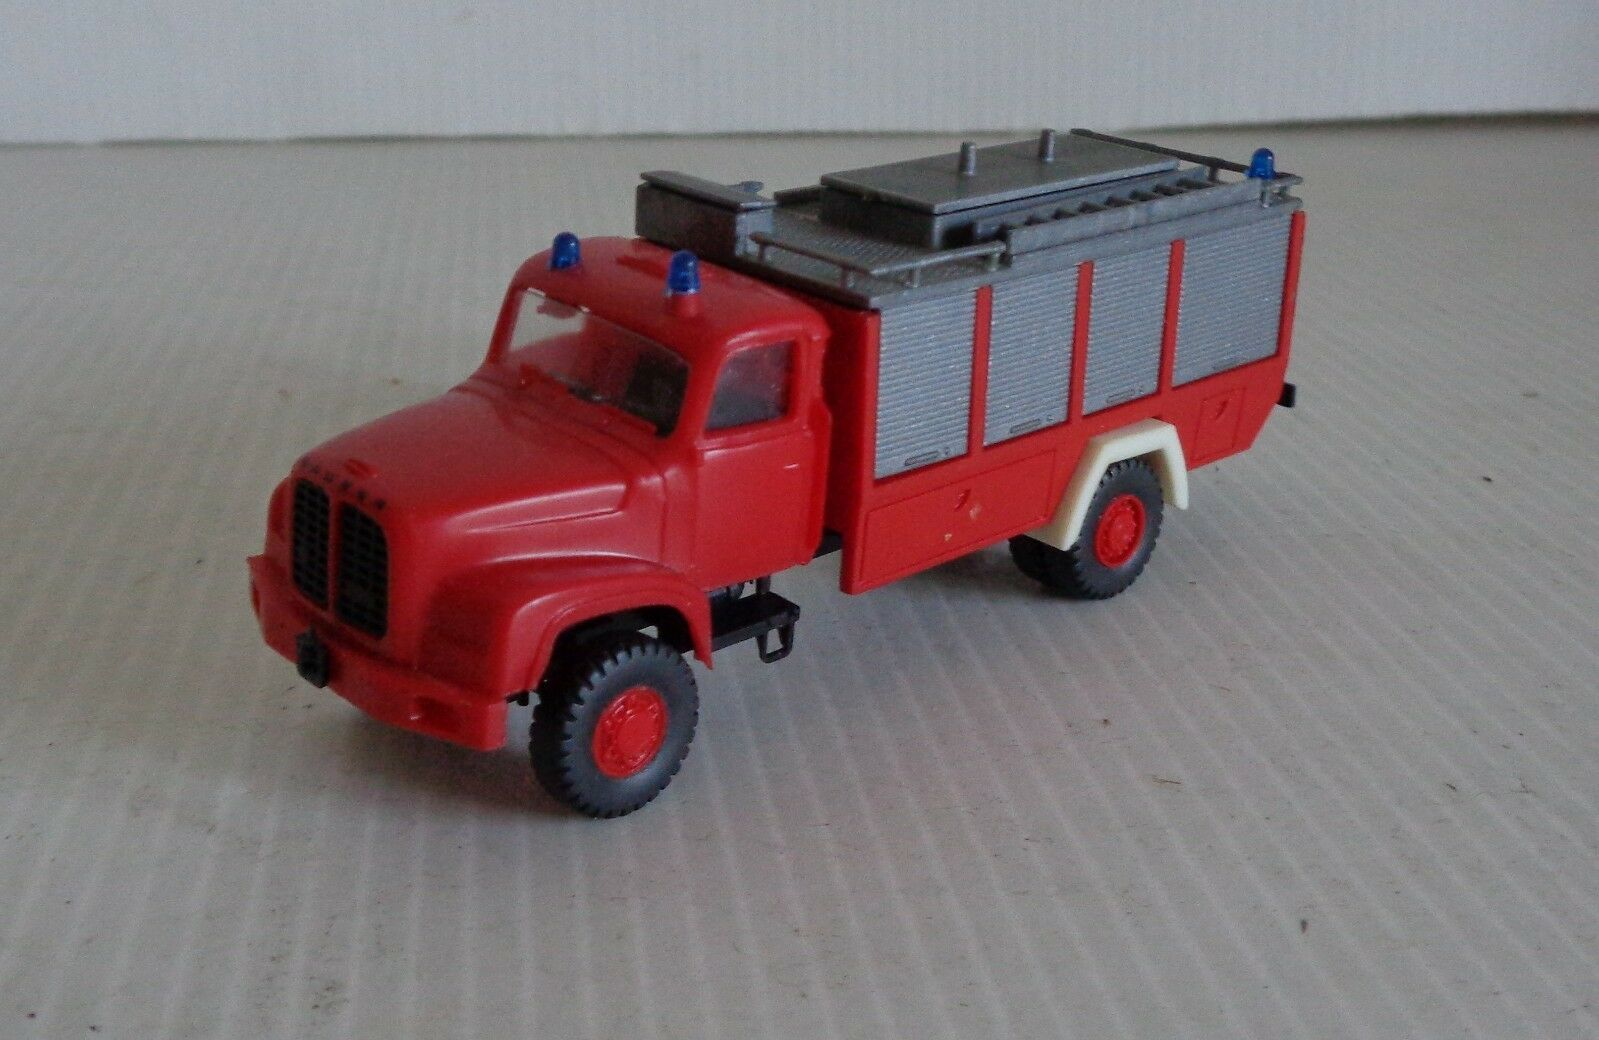 RMM ROSKOPF Truck SAURER FIREFIGHTER Ech 1 87 GOOD CONDITION